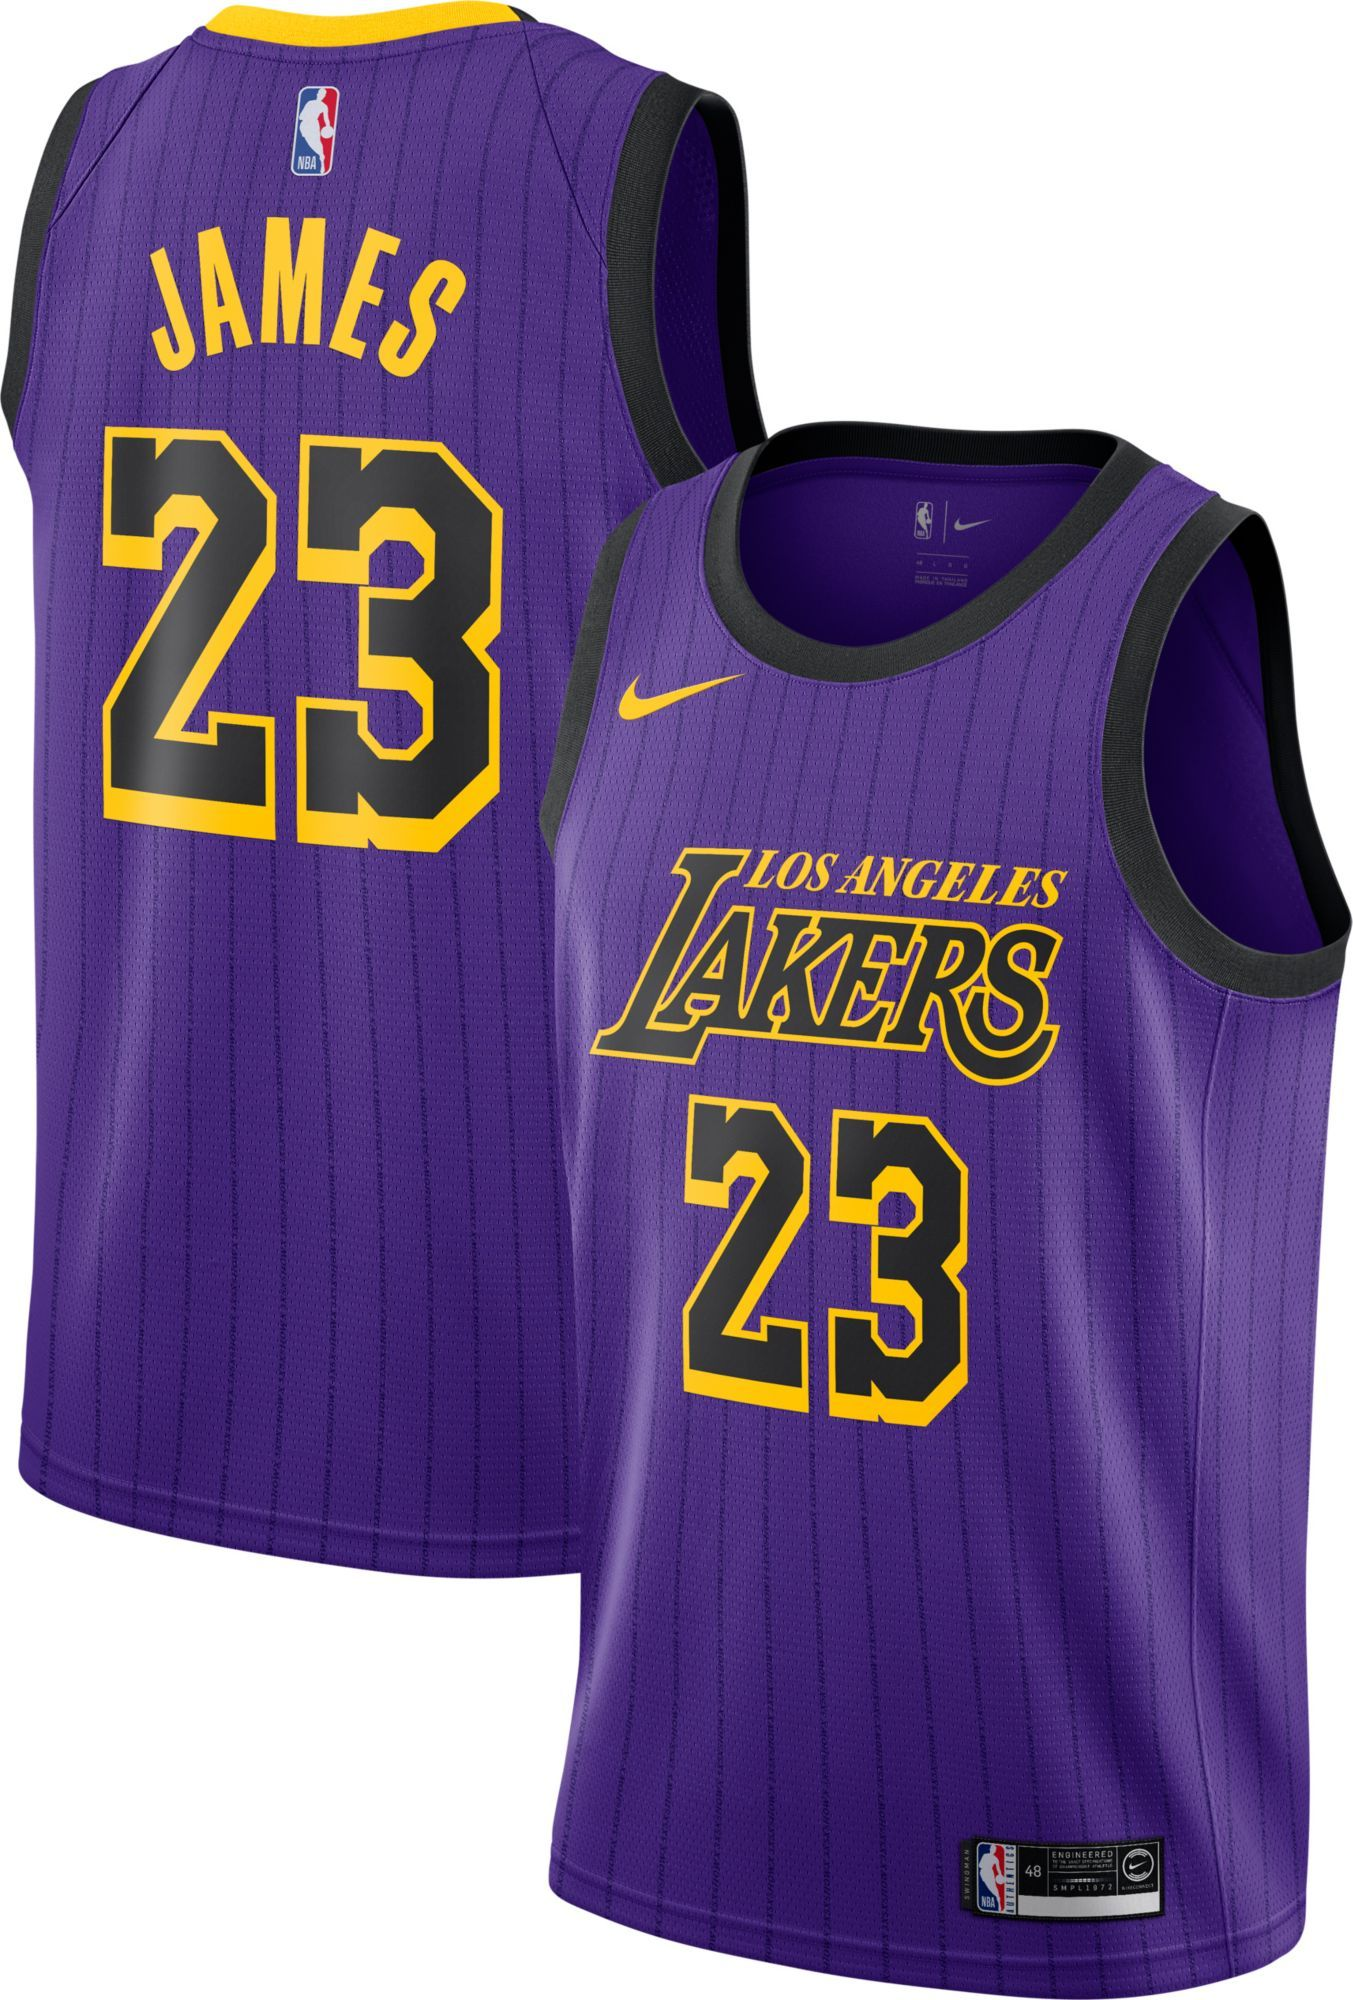 afdea0d14 Nike Men's Los Angeles Lakers LeBron James Dri-FIT City Edition Swingman  Jersey, Size: XXL, Purple